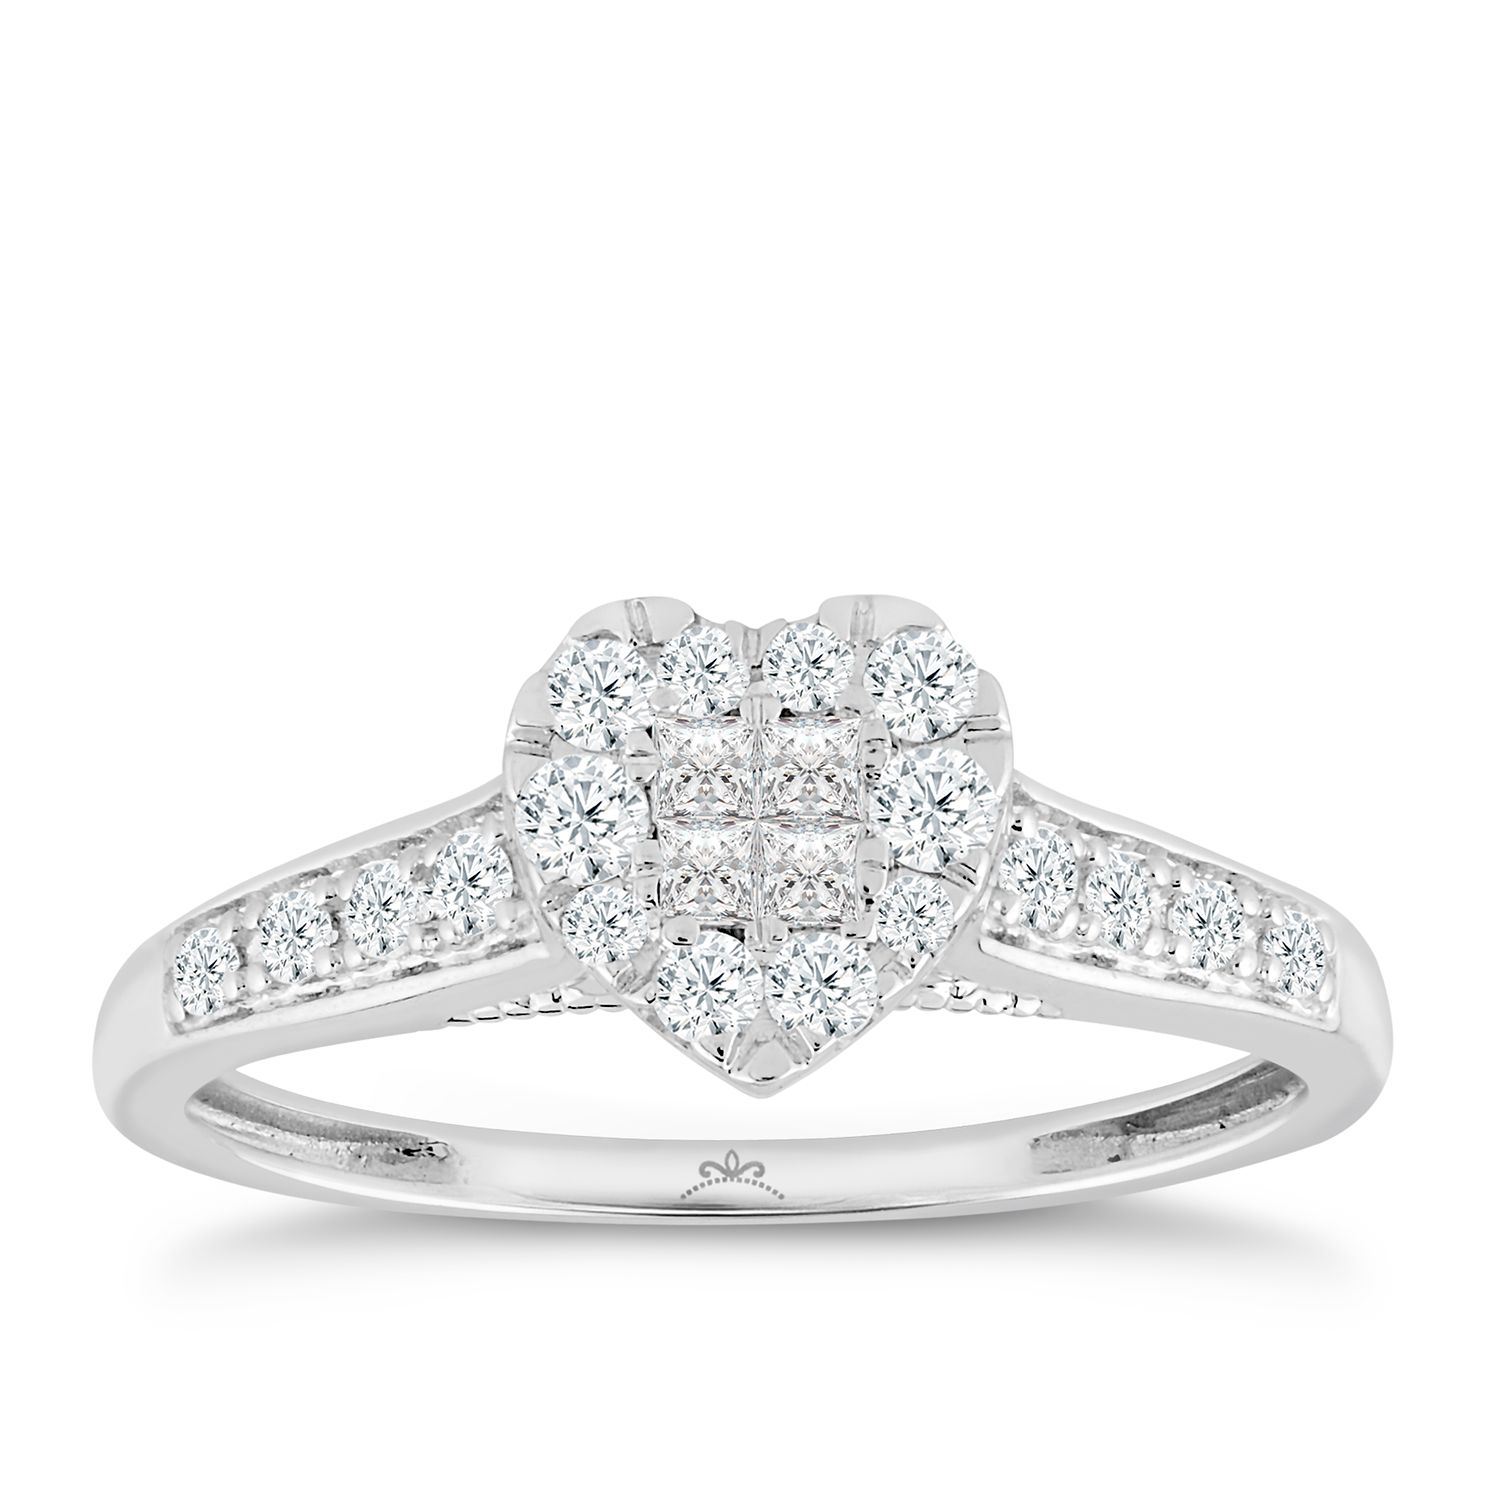 Princessa 9ct White Gold 1/3ct Diamond Heart Ring - Product number 2888378